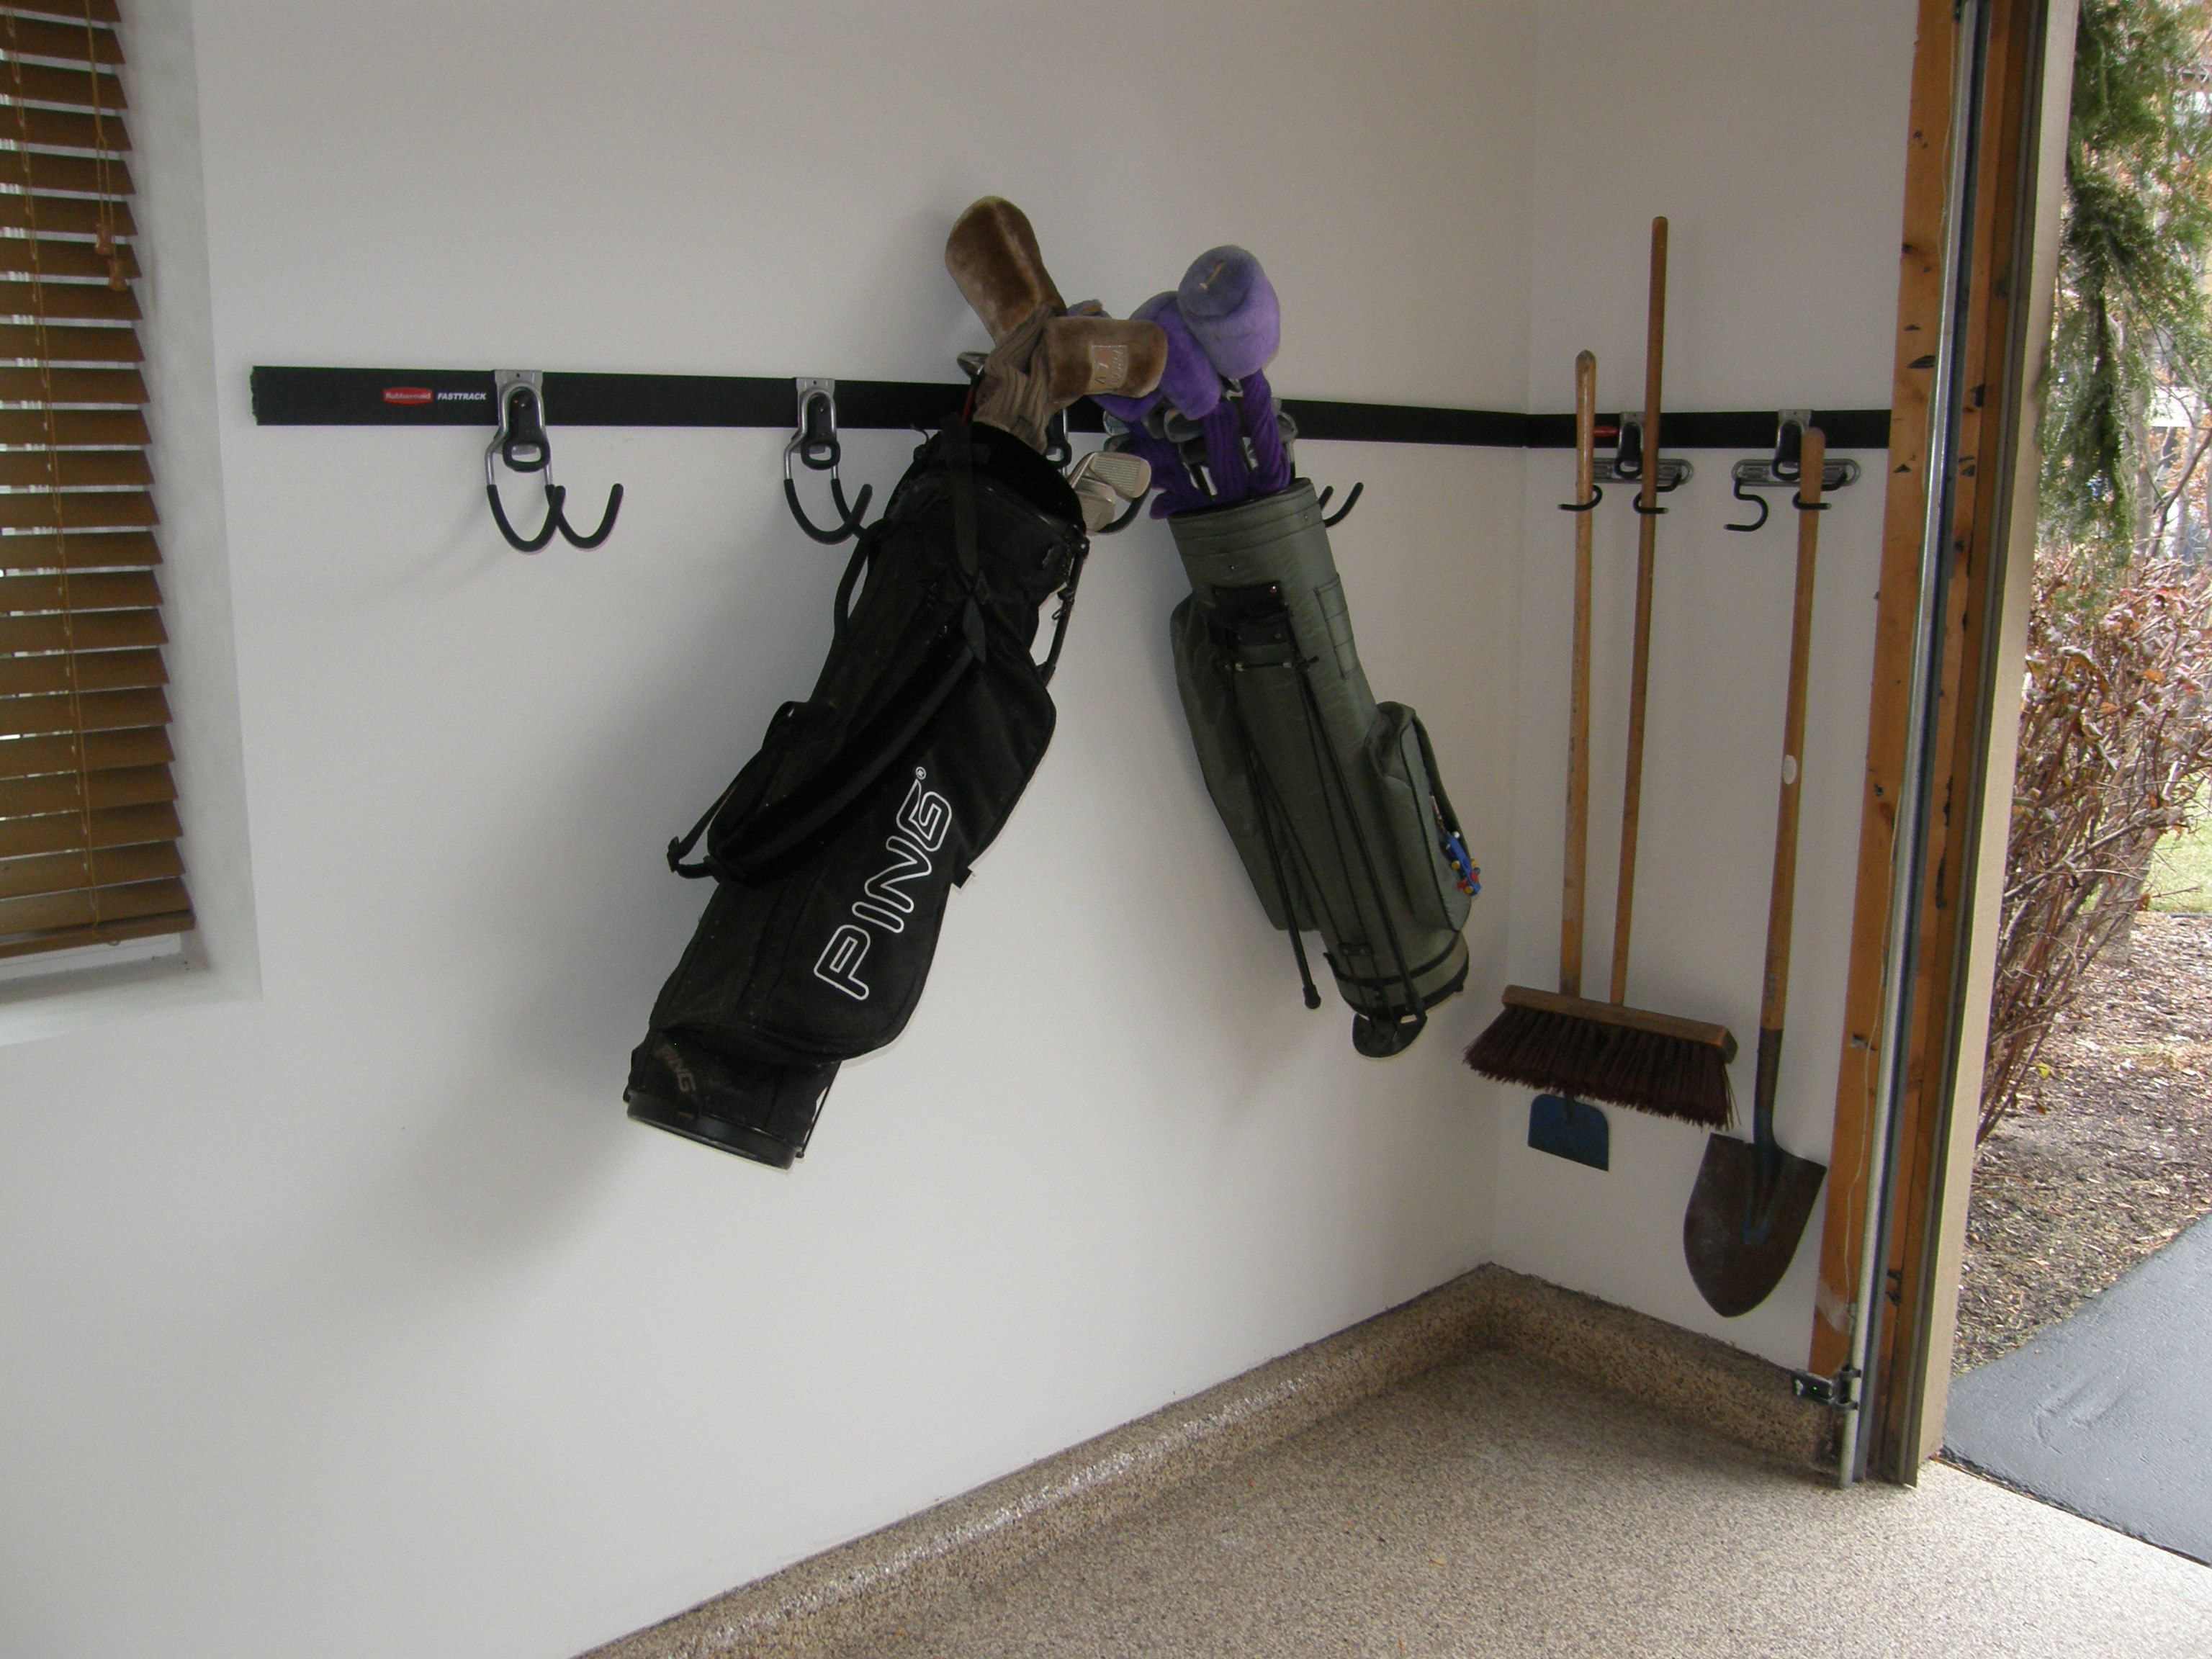 Golf Club Storage Garage Accessories By Closets For Life In Minneapolis St Paul Keep Your Floor Clear Of Clutter With Custom Closet Organization